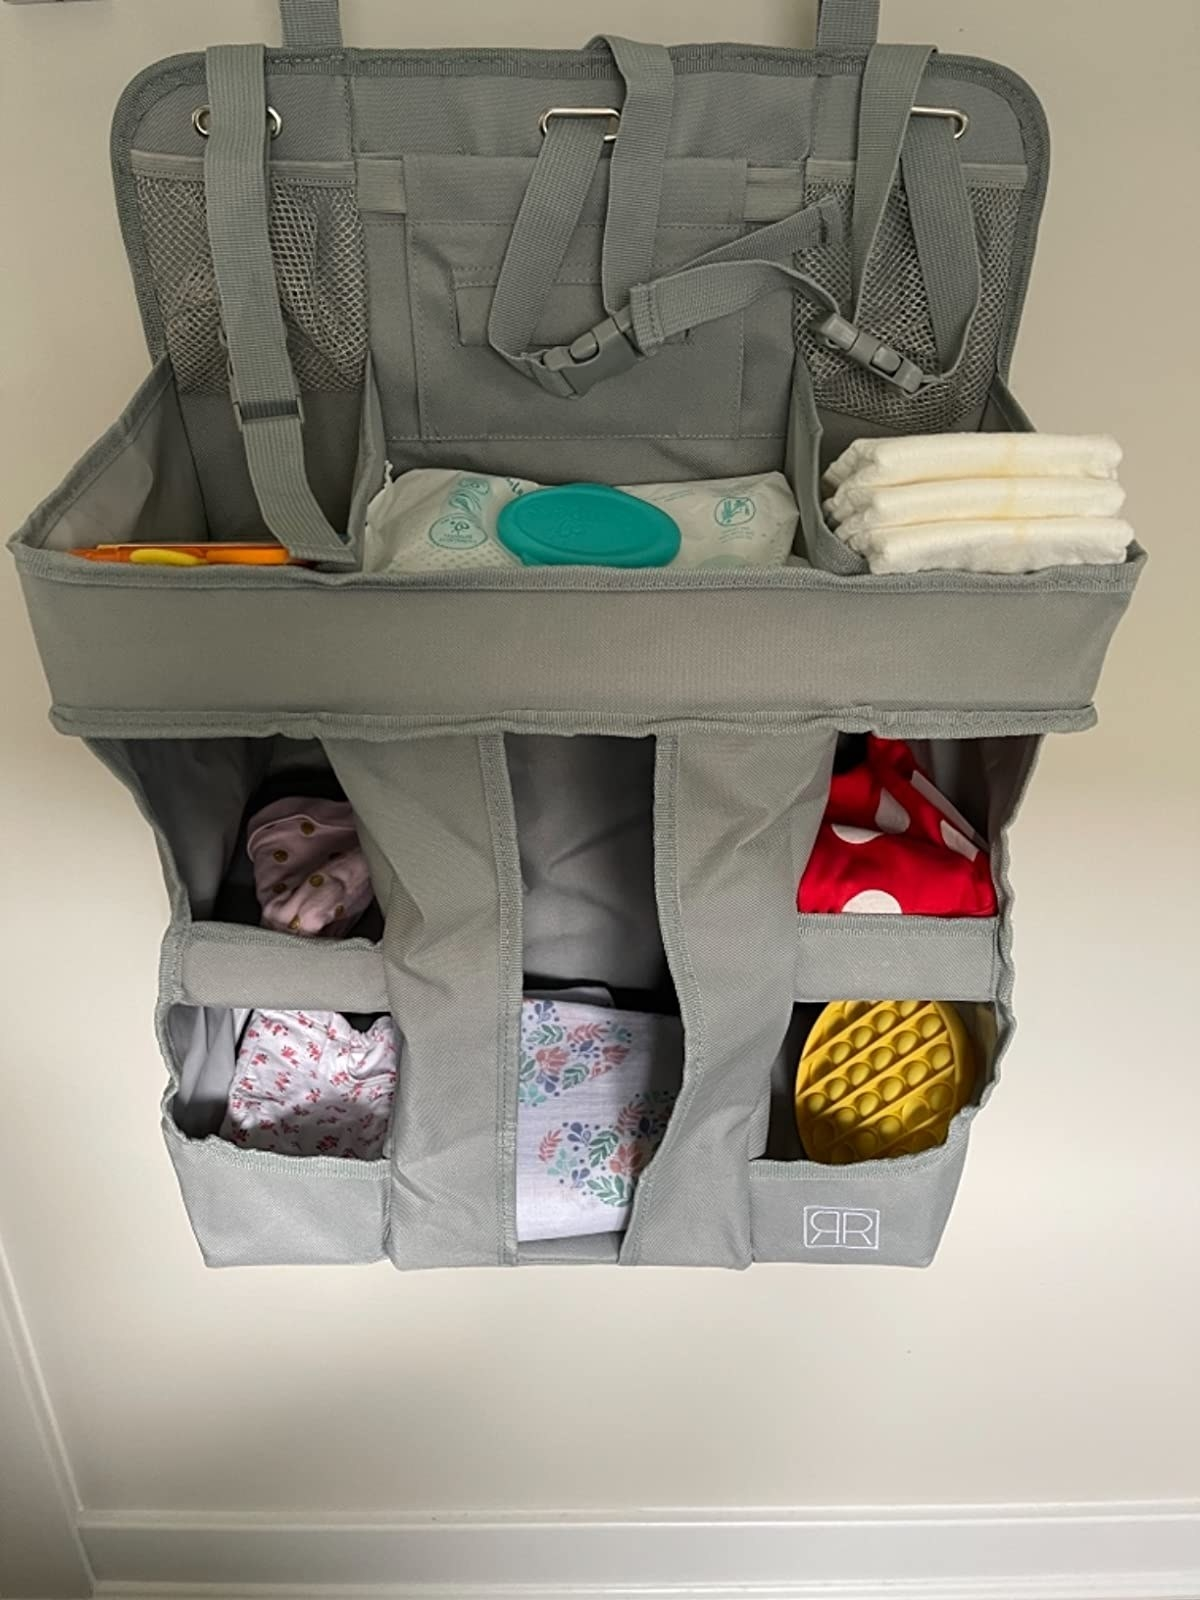 The organizer fastened to a wall holding diapers, wipes and more